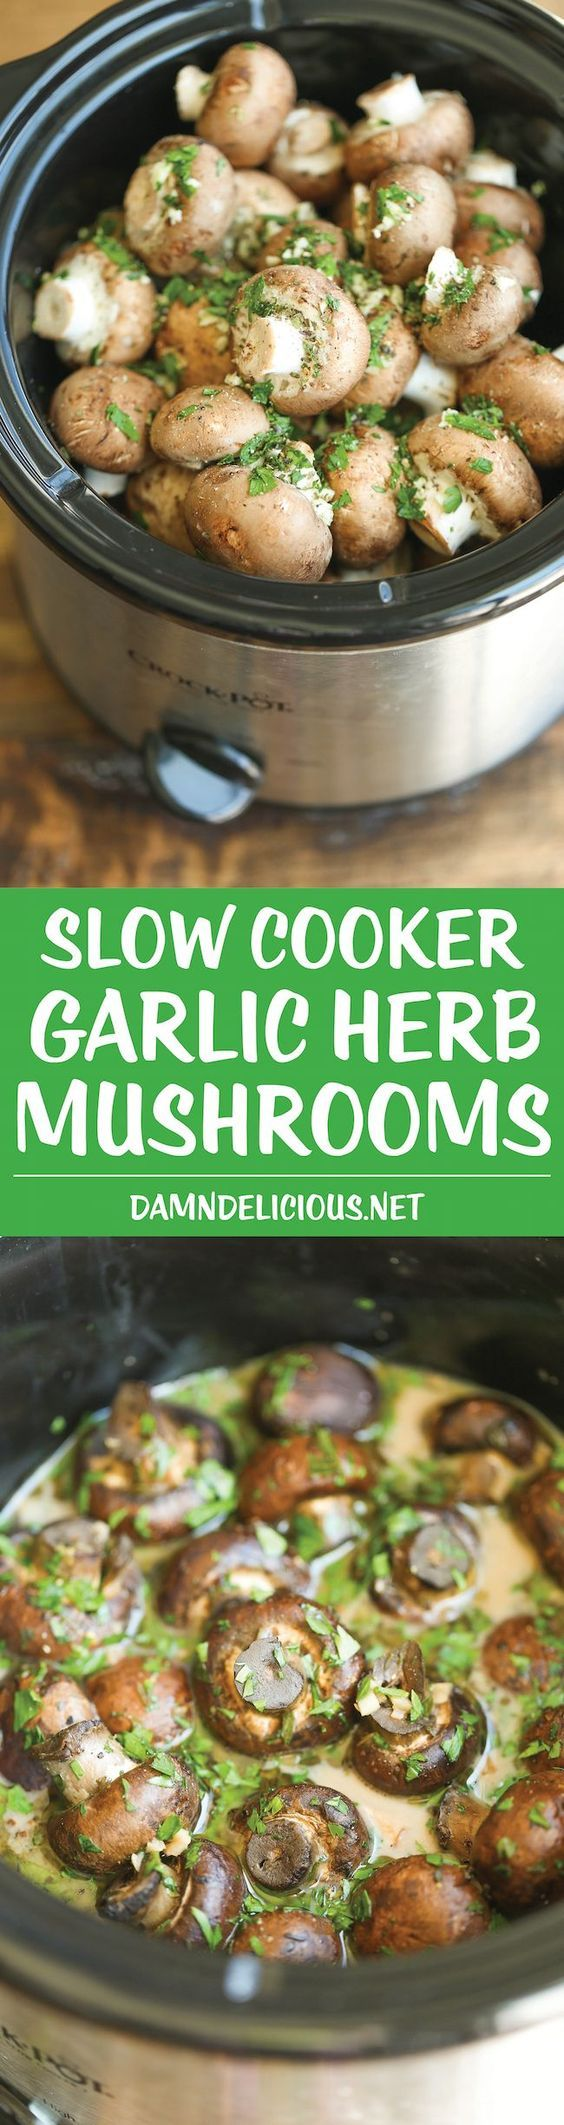 Slow Cooker Garlic Herb Mushrooms Recipe plus 49 of the most pinned crock pot recipes